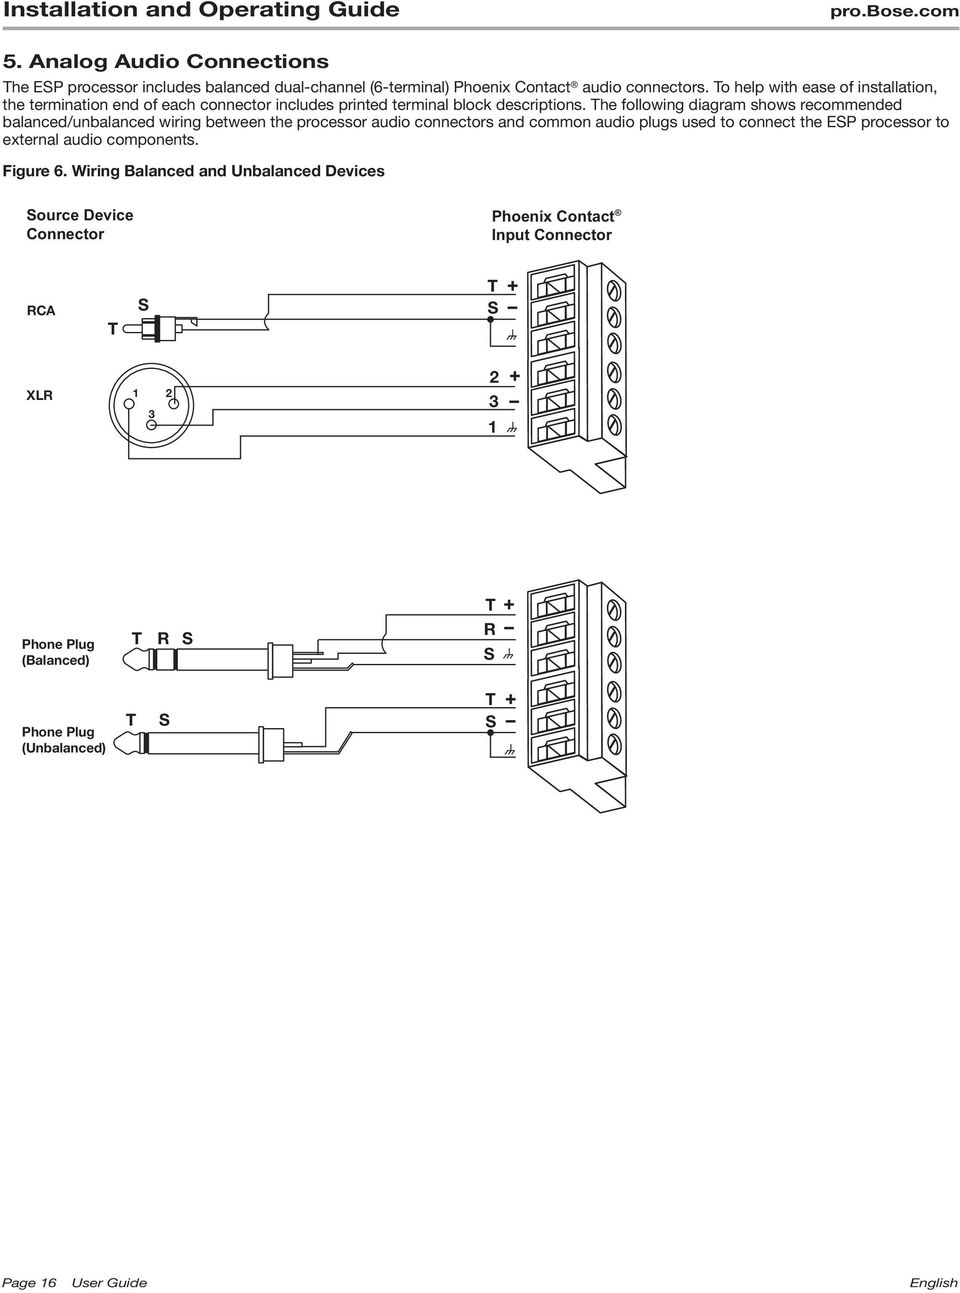 The following diagram shows recommended balanced/unbalanced wiring between the processor audio connectors and common audio plugs used to connect the ESP processor to external